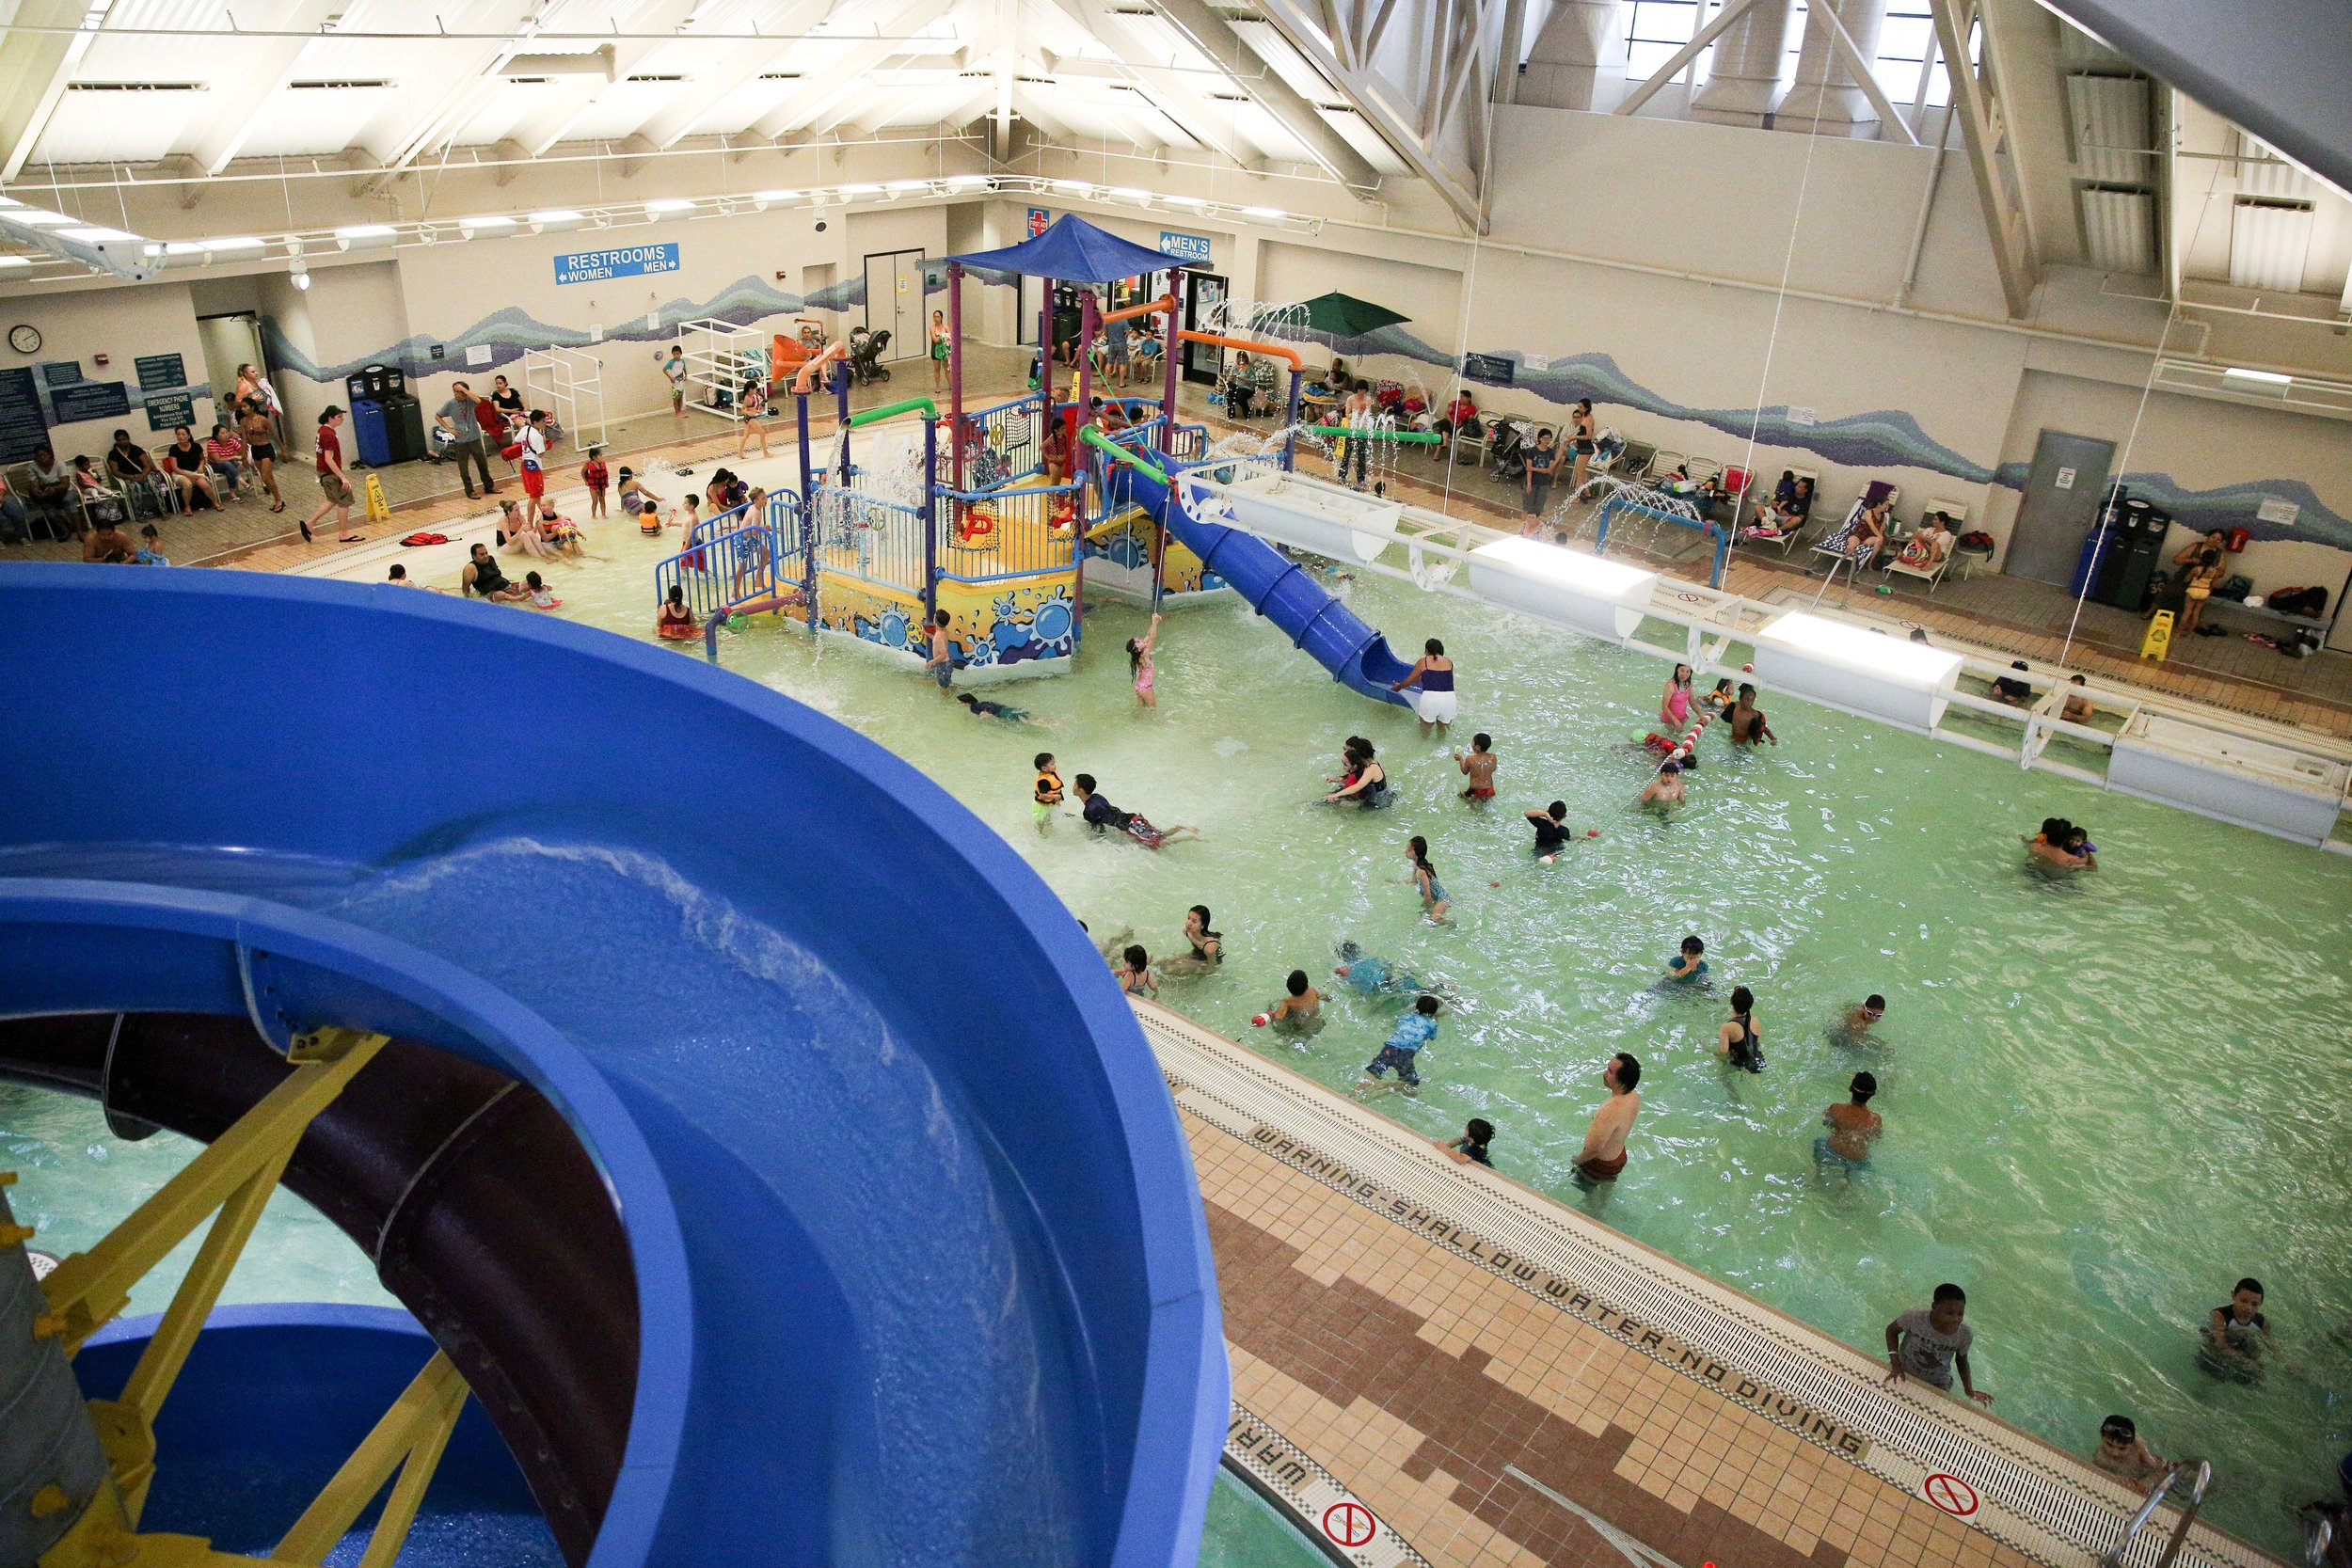 Children play on the activity pool structure at the Silliman Family AquaticCenter in Newark on Friday, Aug. 4, 2017. The structure is set to bereplaced this winter as part of a larger maintenance project. (Photo byJoseph Geha/The Argus)